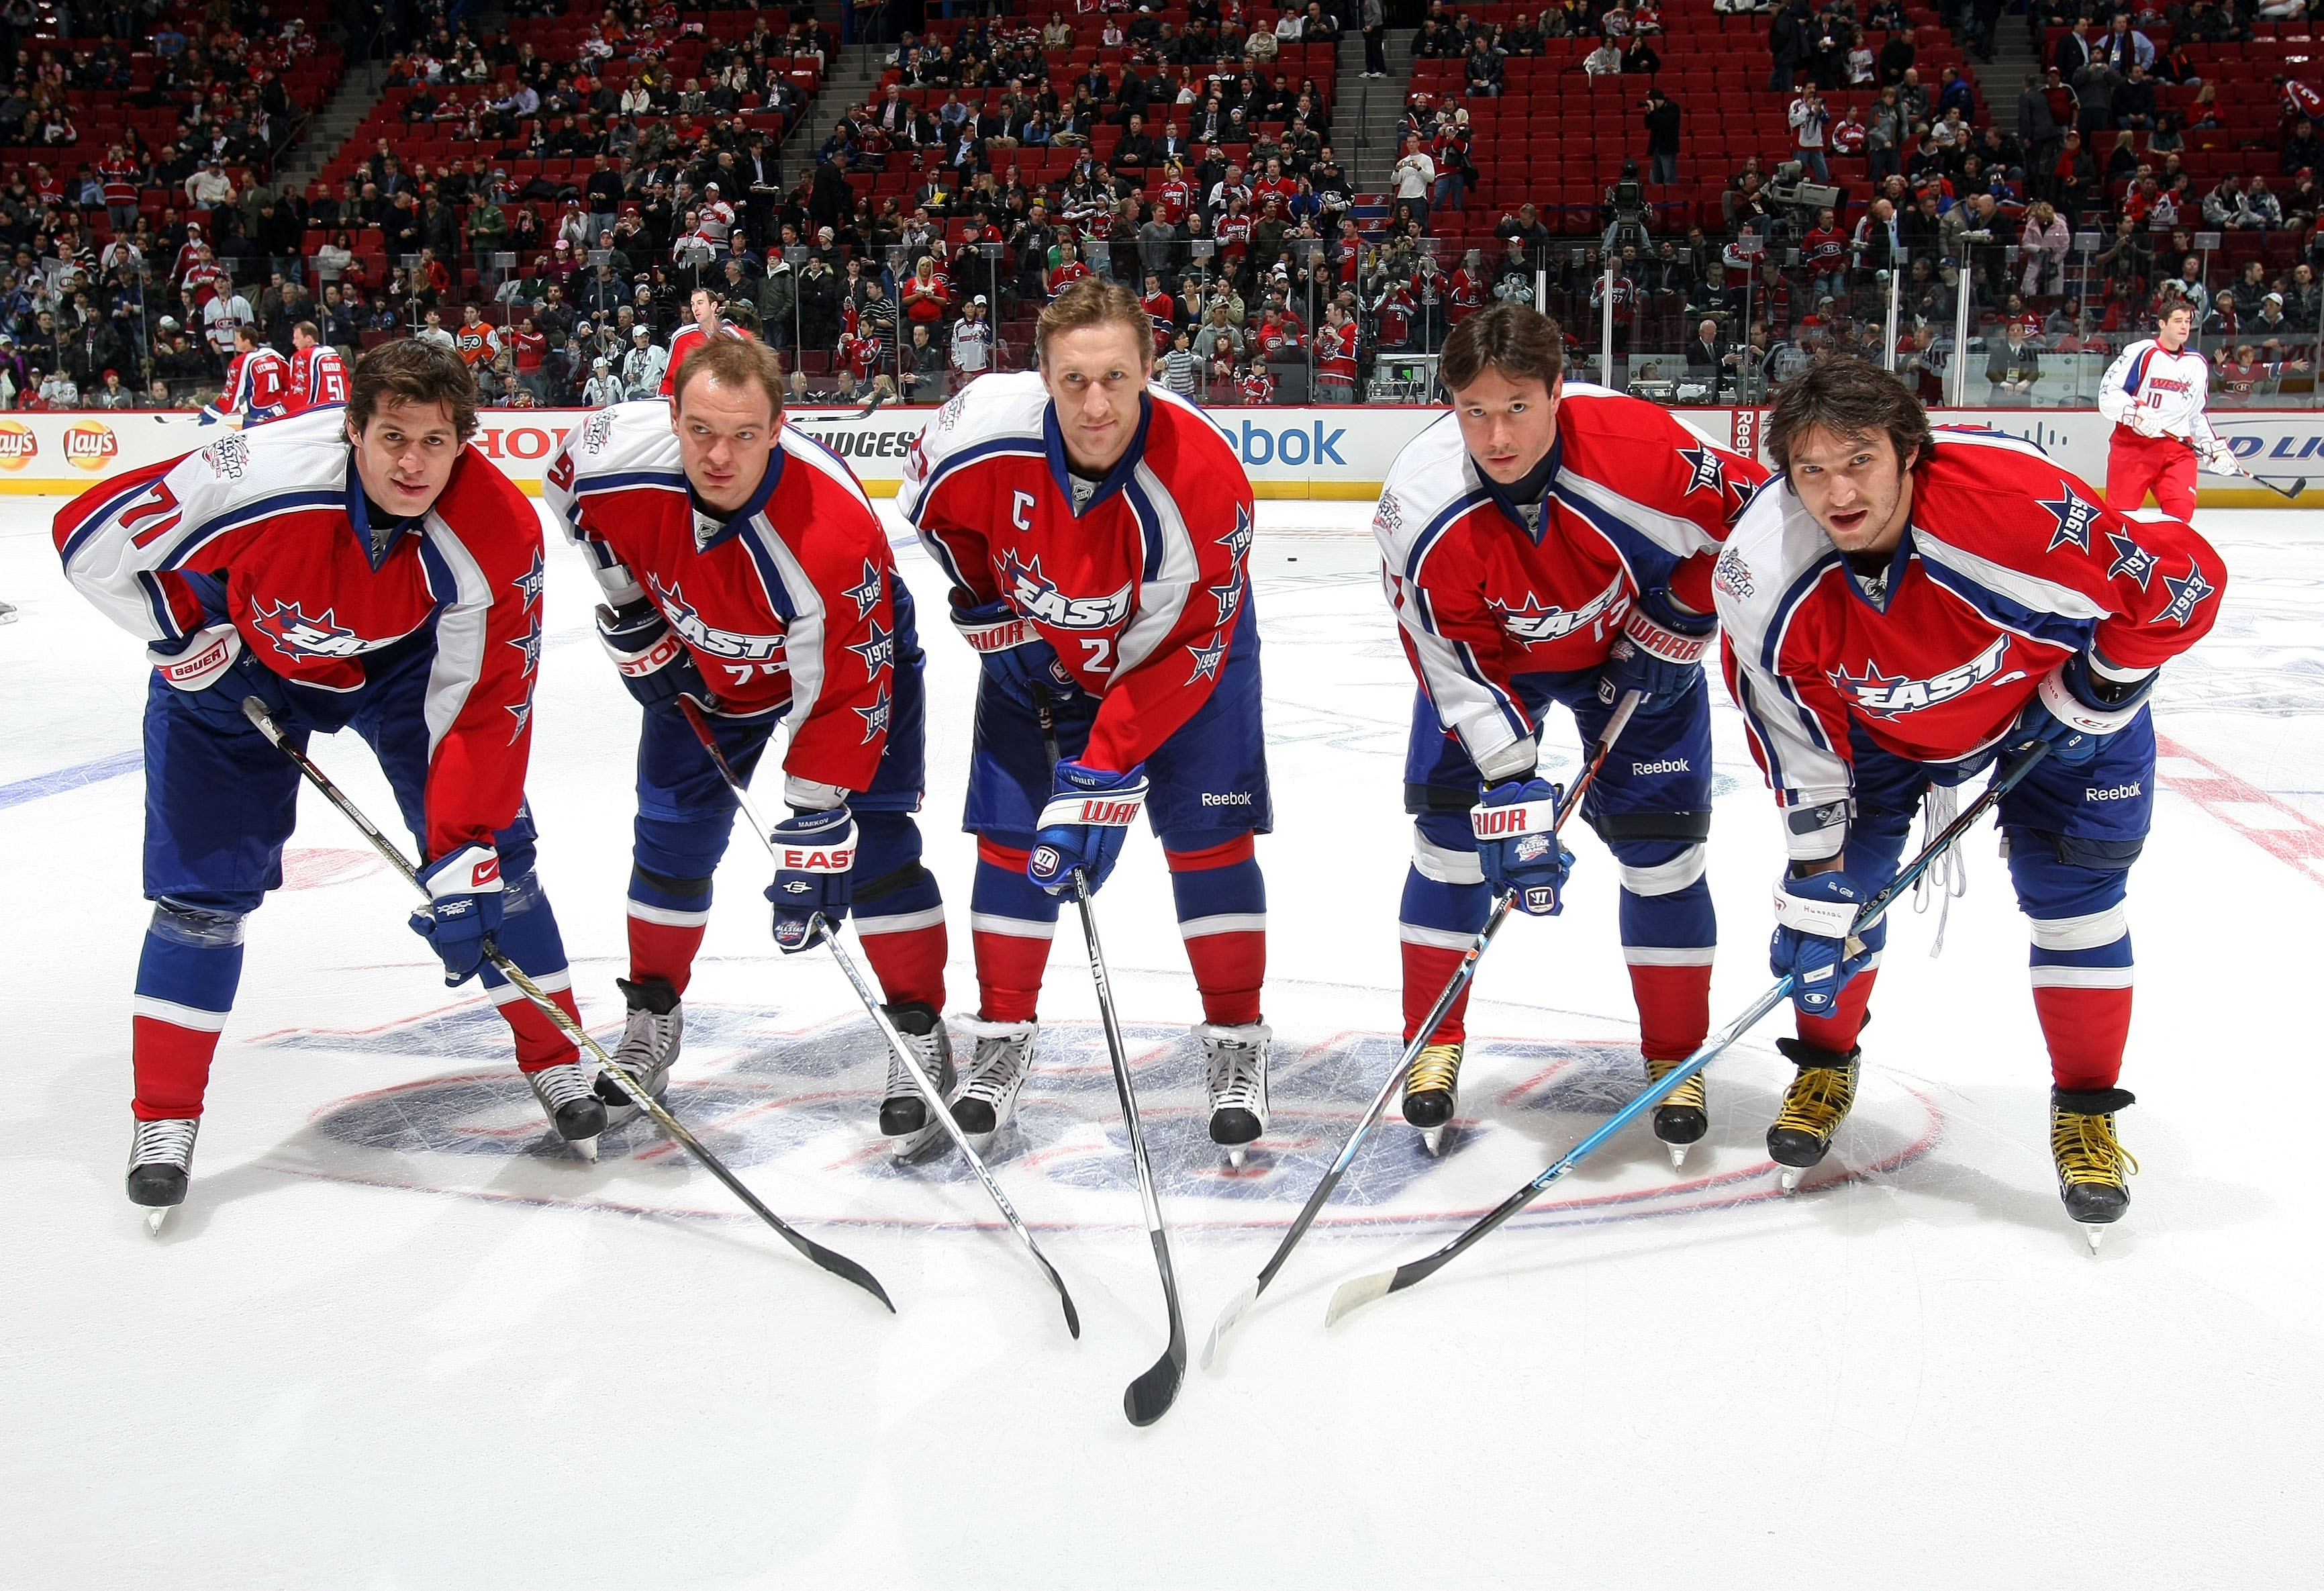 MONTREAL - JANUARY 25:  Evgeni Malkin #71, Andrei Markov #79 , Alex Kovalev #27, Ilya Kovalchuk #17 and Alex Ovechkin #8 of the Eastern Conference All-Stars pose for a photo during the 2009 NHL All-Star game at the Bell Centre on January 25, 2009 in Montr